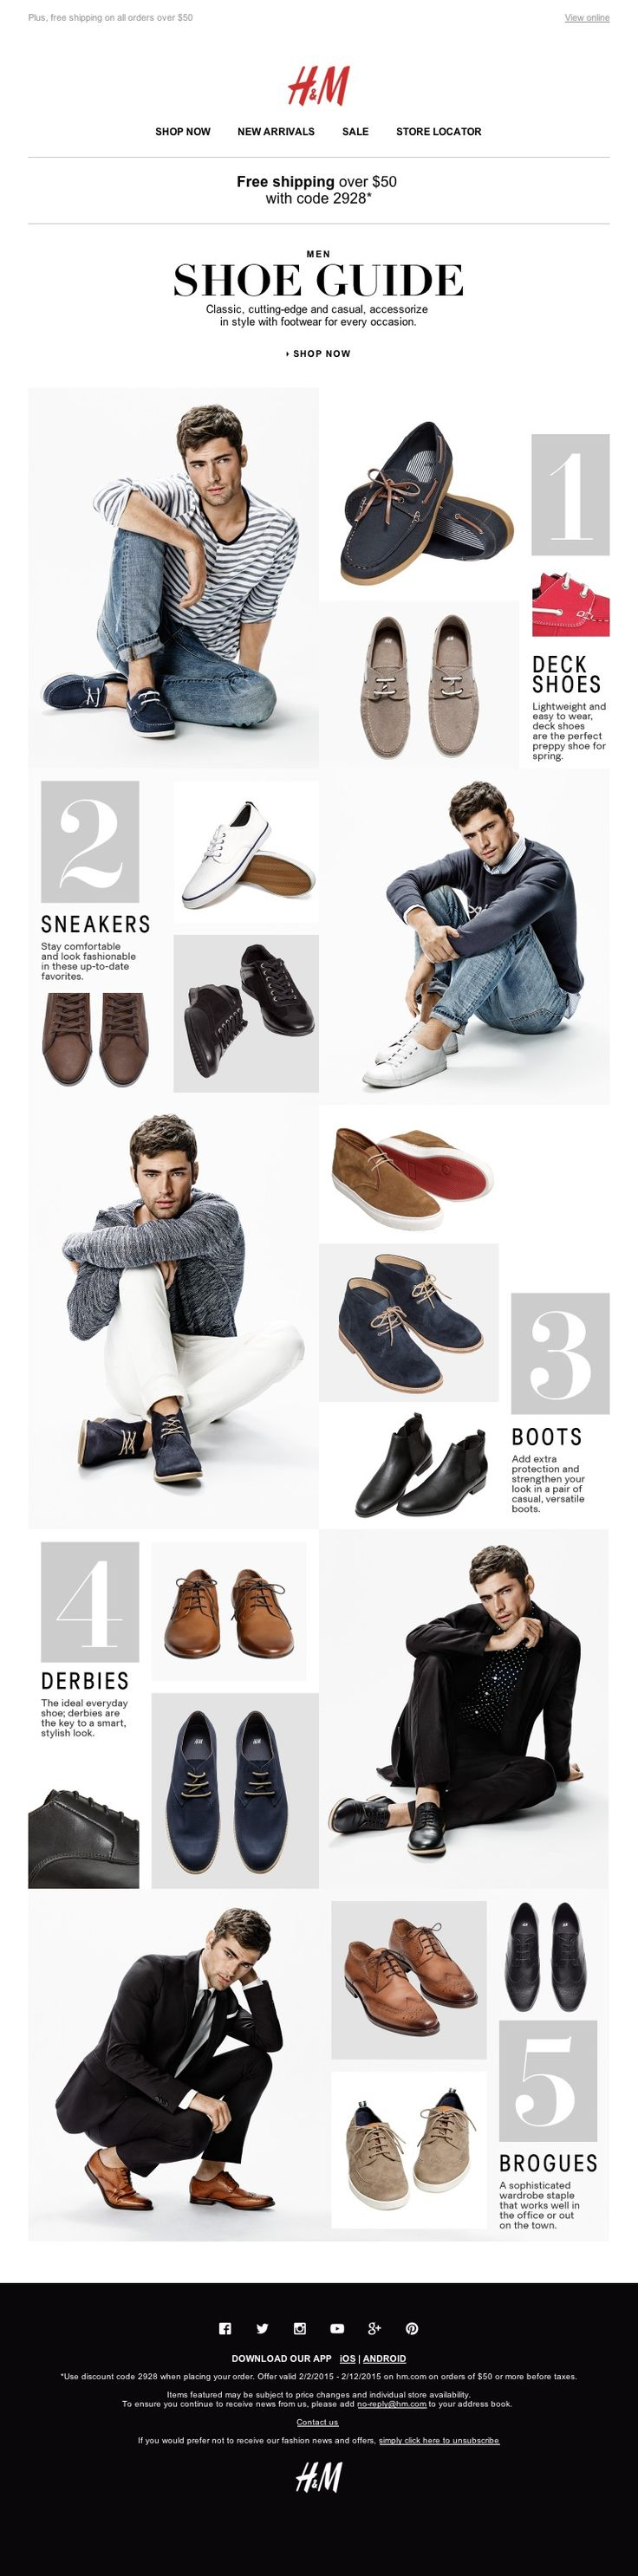 H&M Spring Shoe Guide - great way to show outfitting while incorporating accessories into the message (would love to do a total accessories guide with hats, bags, shoes, SOCKS)